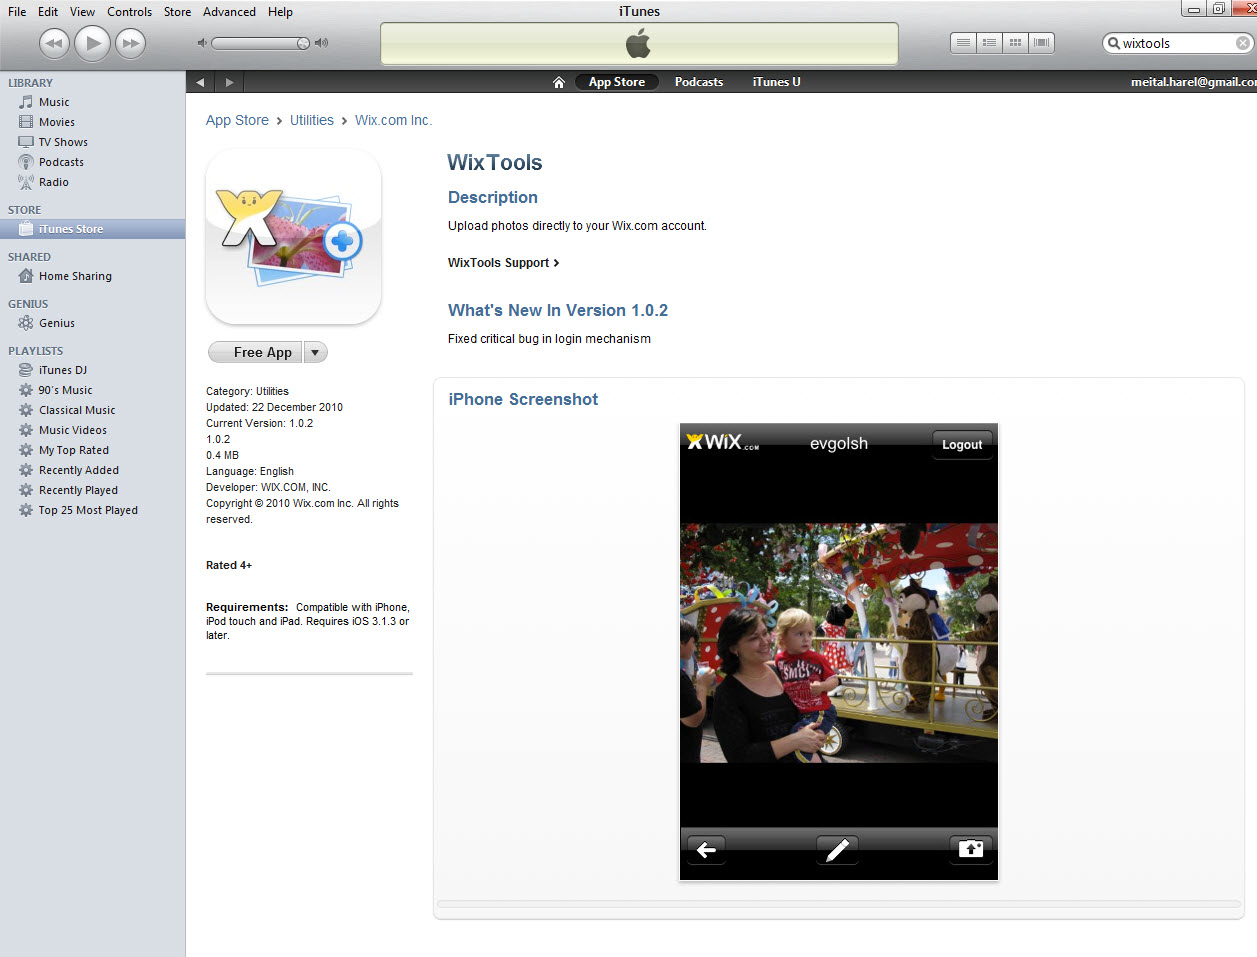 WixTools iPhone app for photos